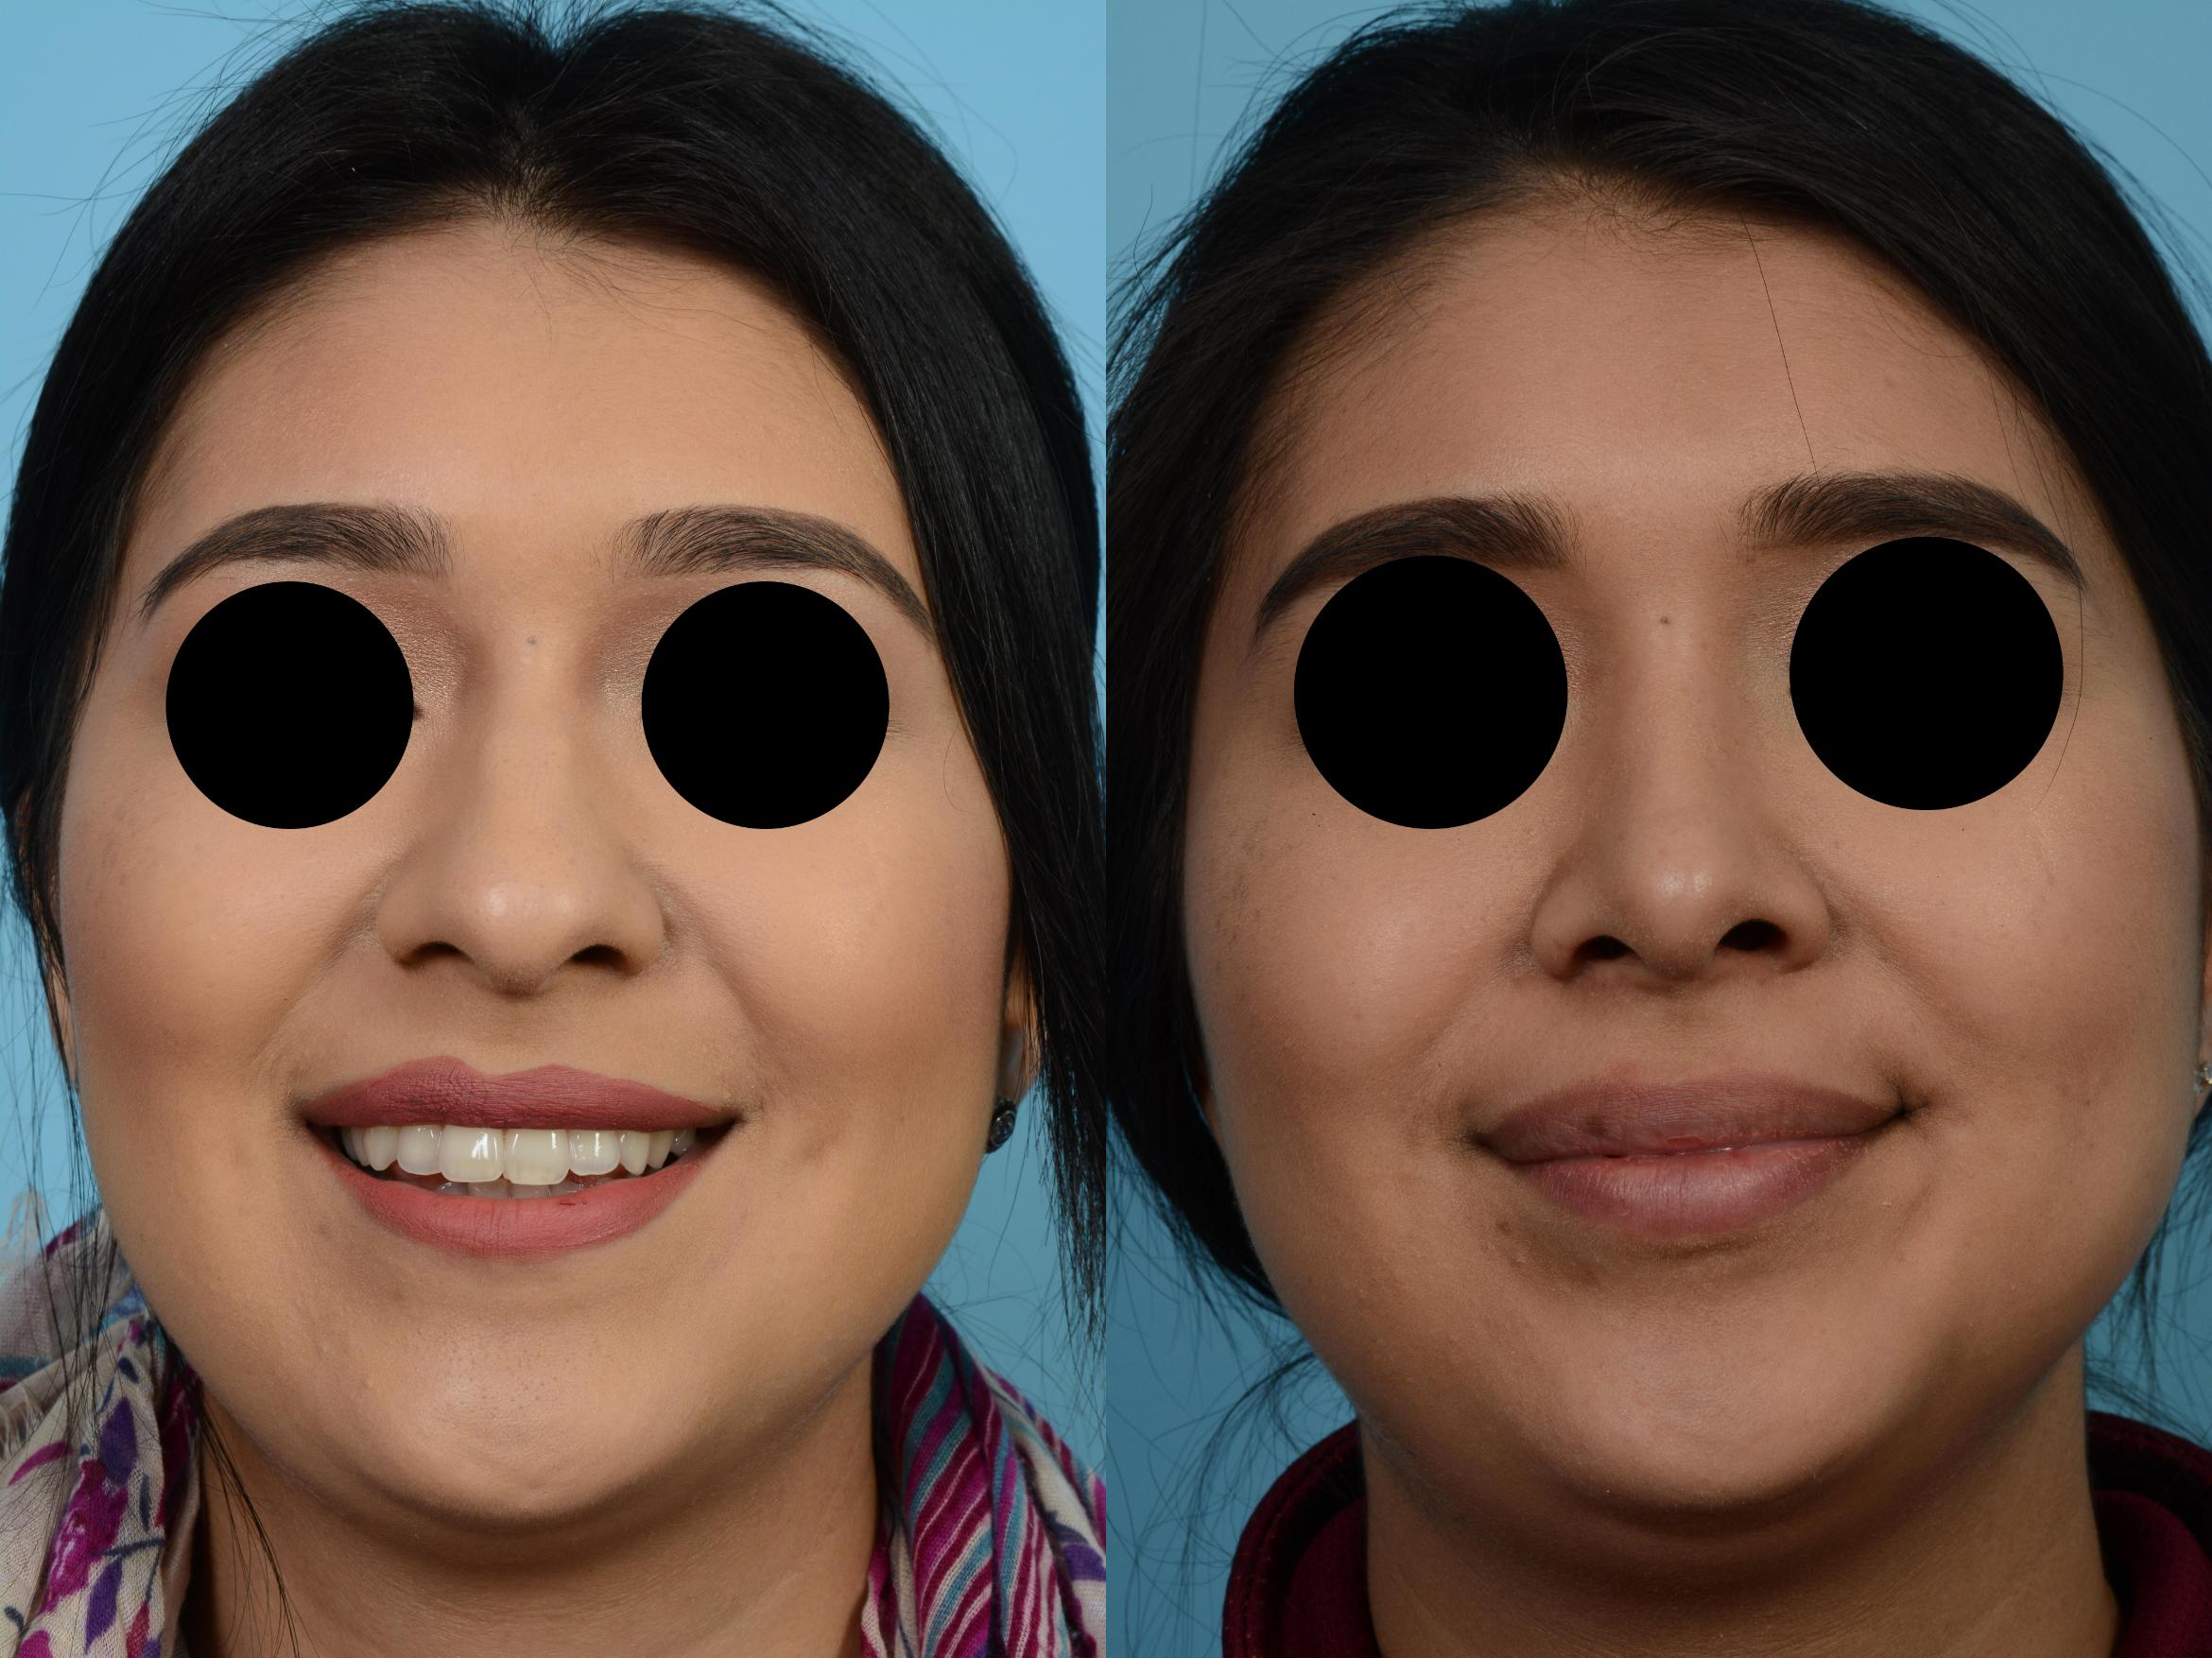 Rhinoplasty by Dr. Mustoe Case 508 Before & After View #1 | Chicago, IL | TLKM Plastic Surgery